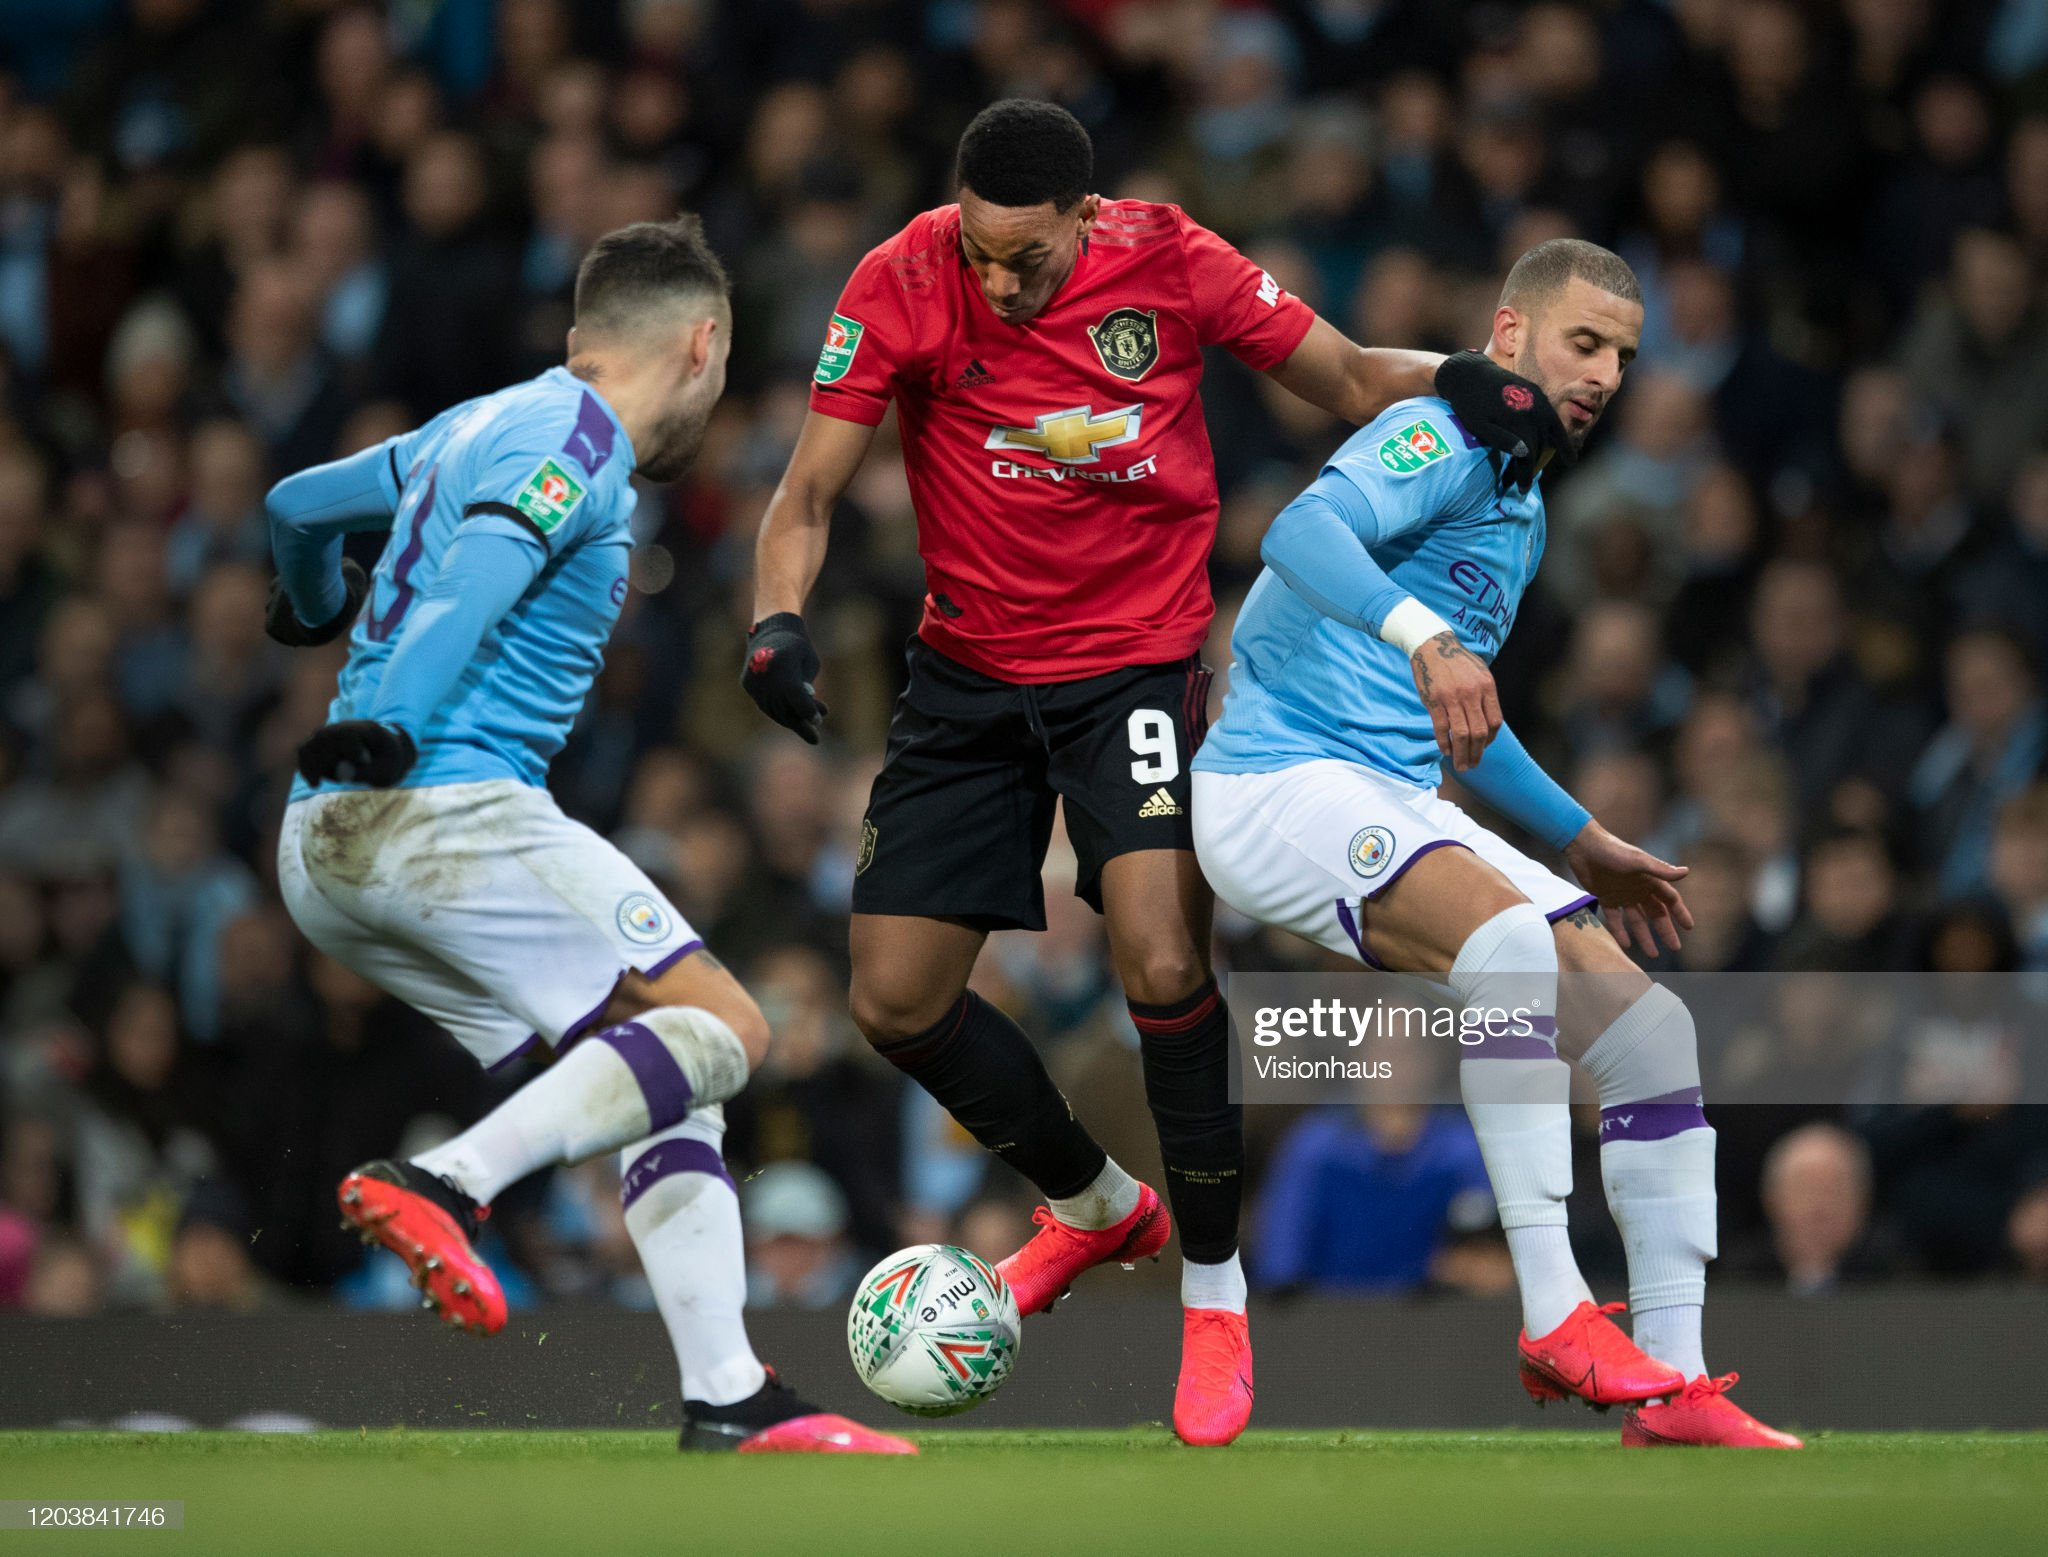 Manchester United v Manchester City Preview, prediction and odds